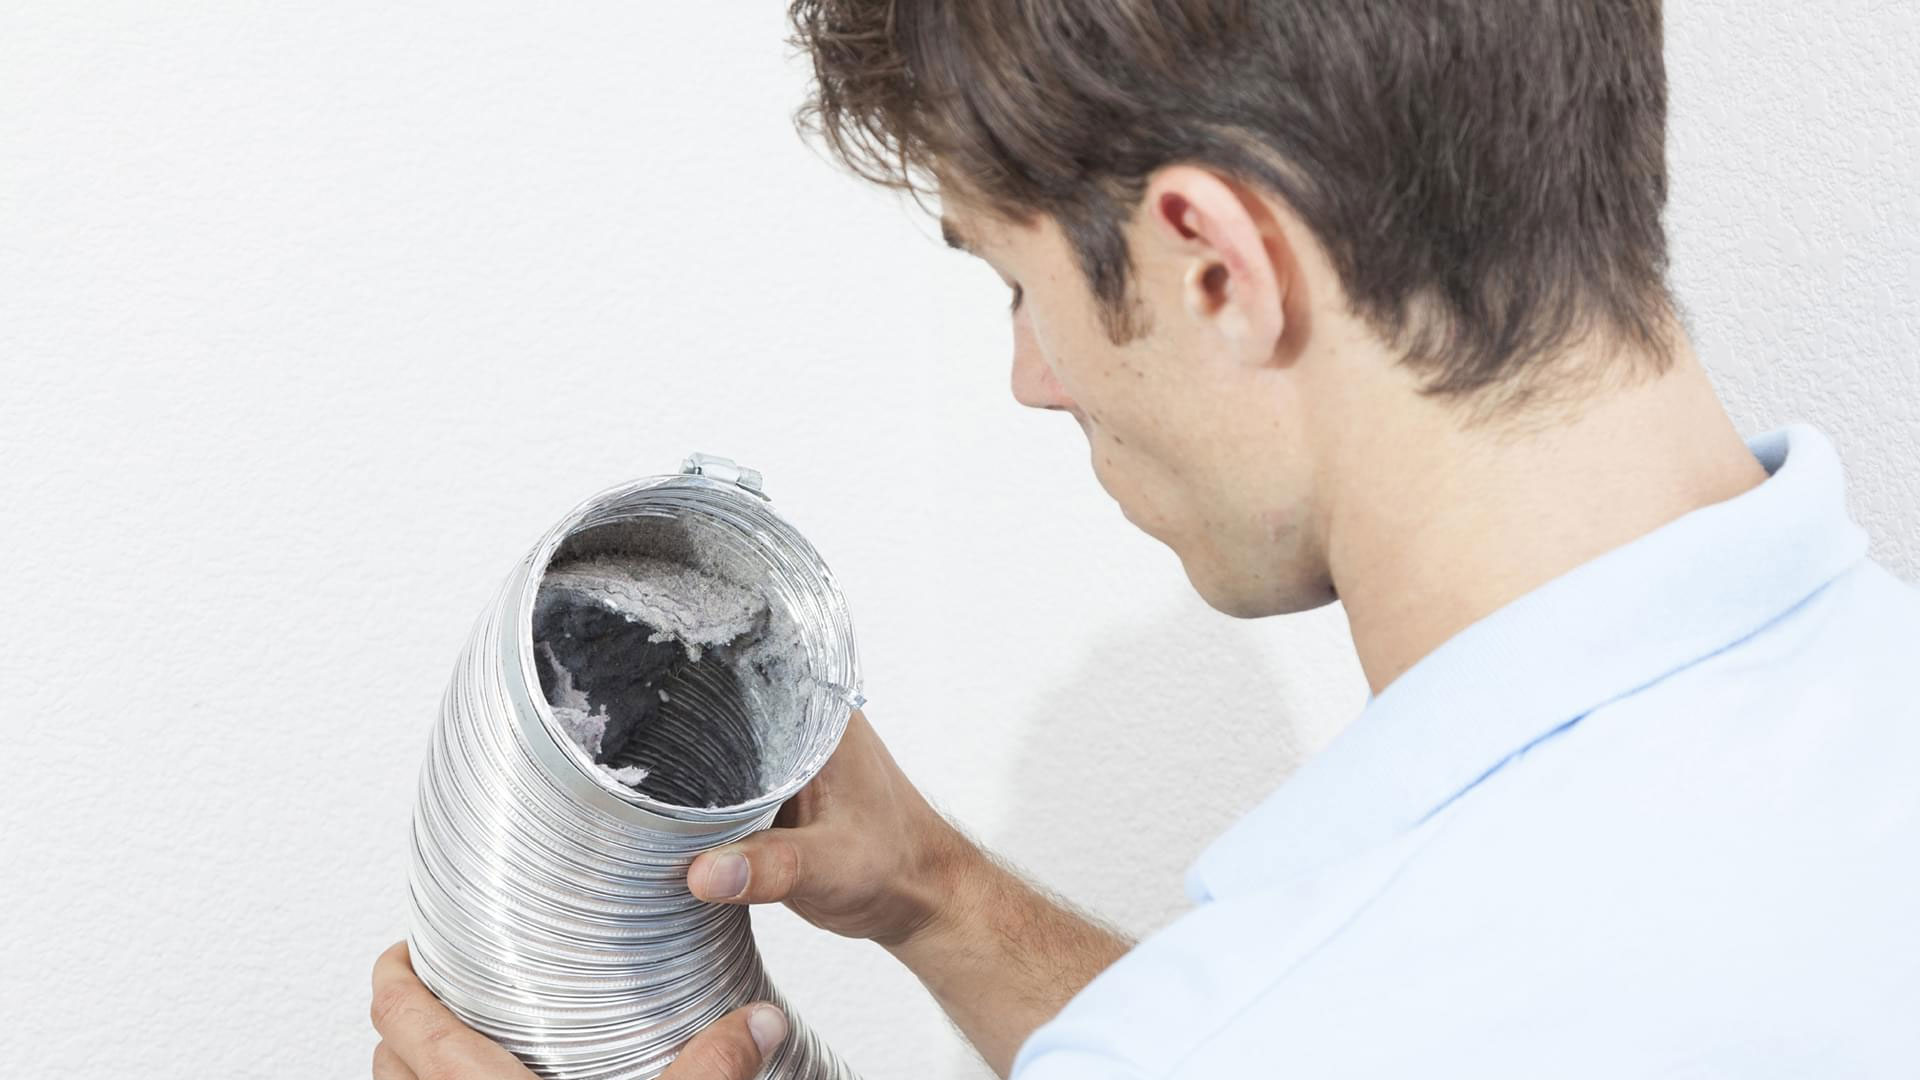 Dryer vent duct installation | S & R Air Duct Cleaning Services